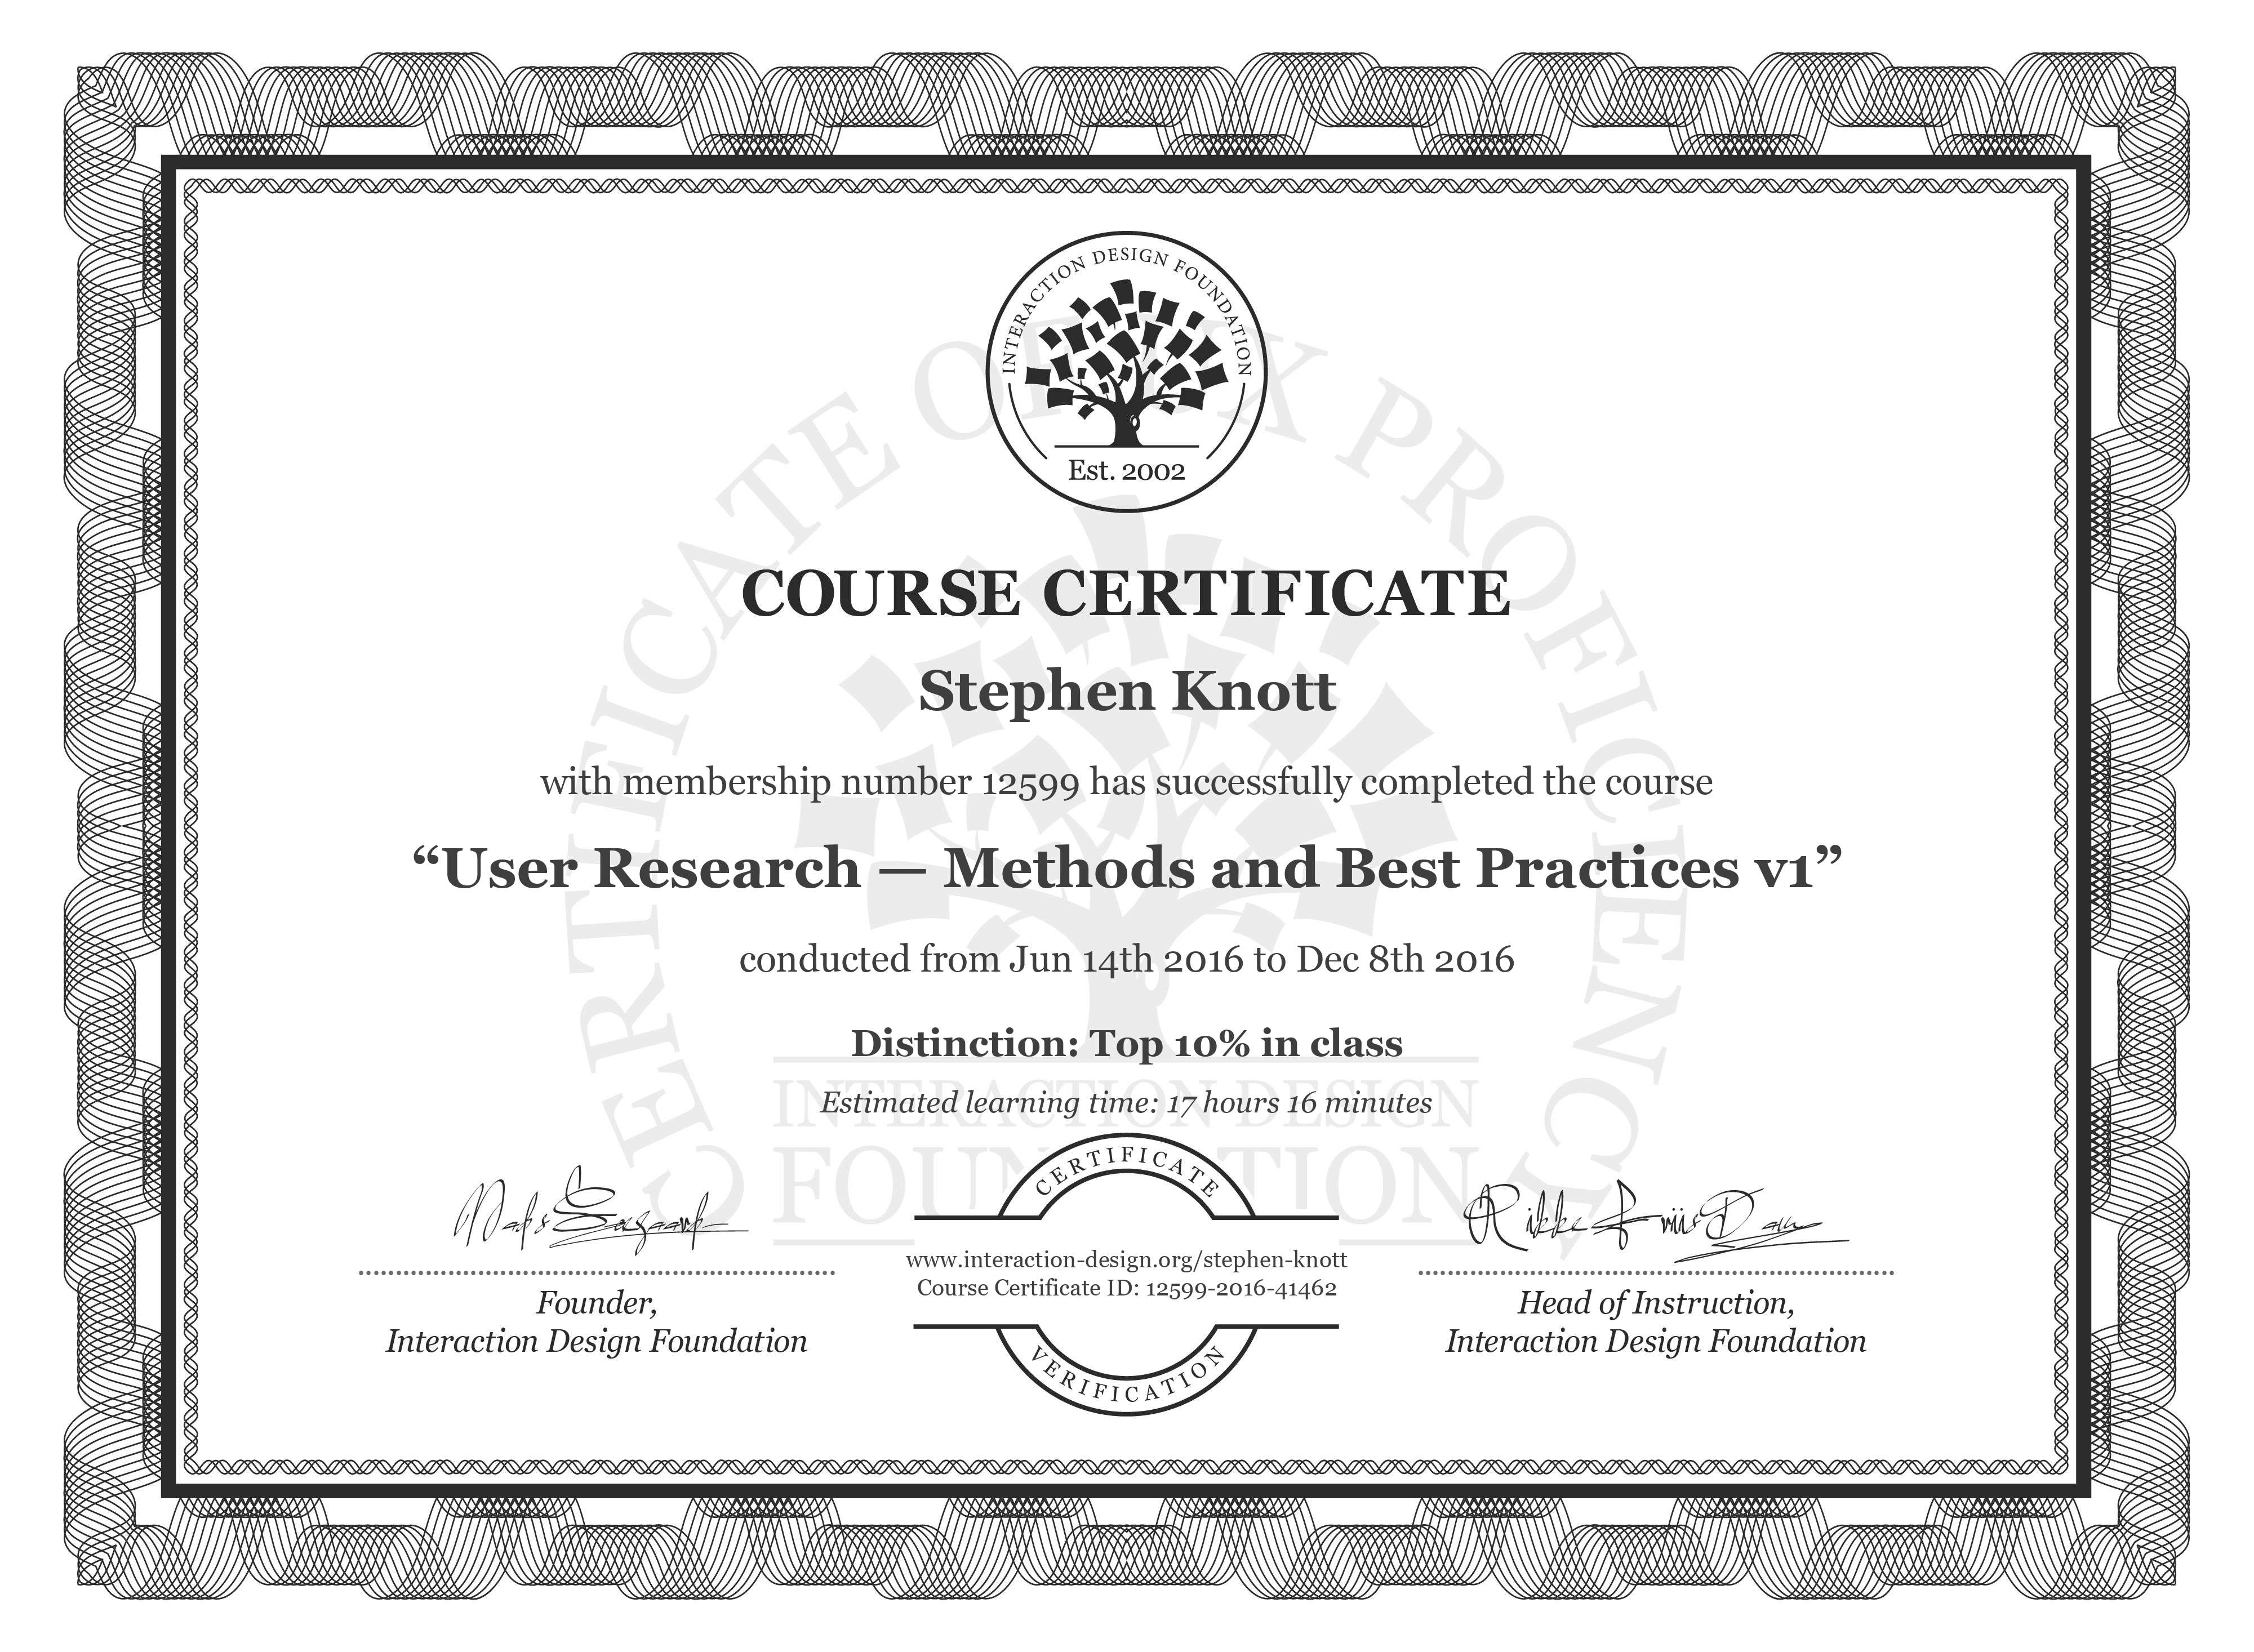 Stephen Knott: Course Certificate - User Research — Methods and Best Practices